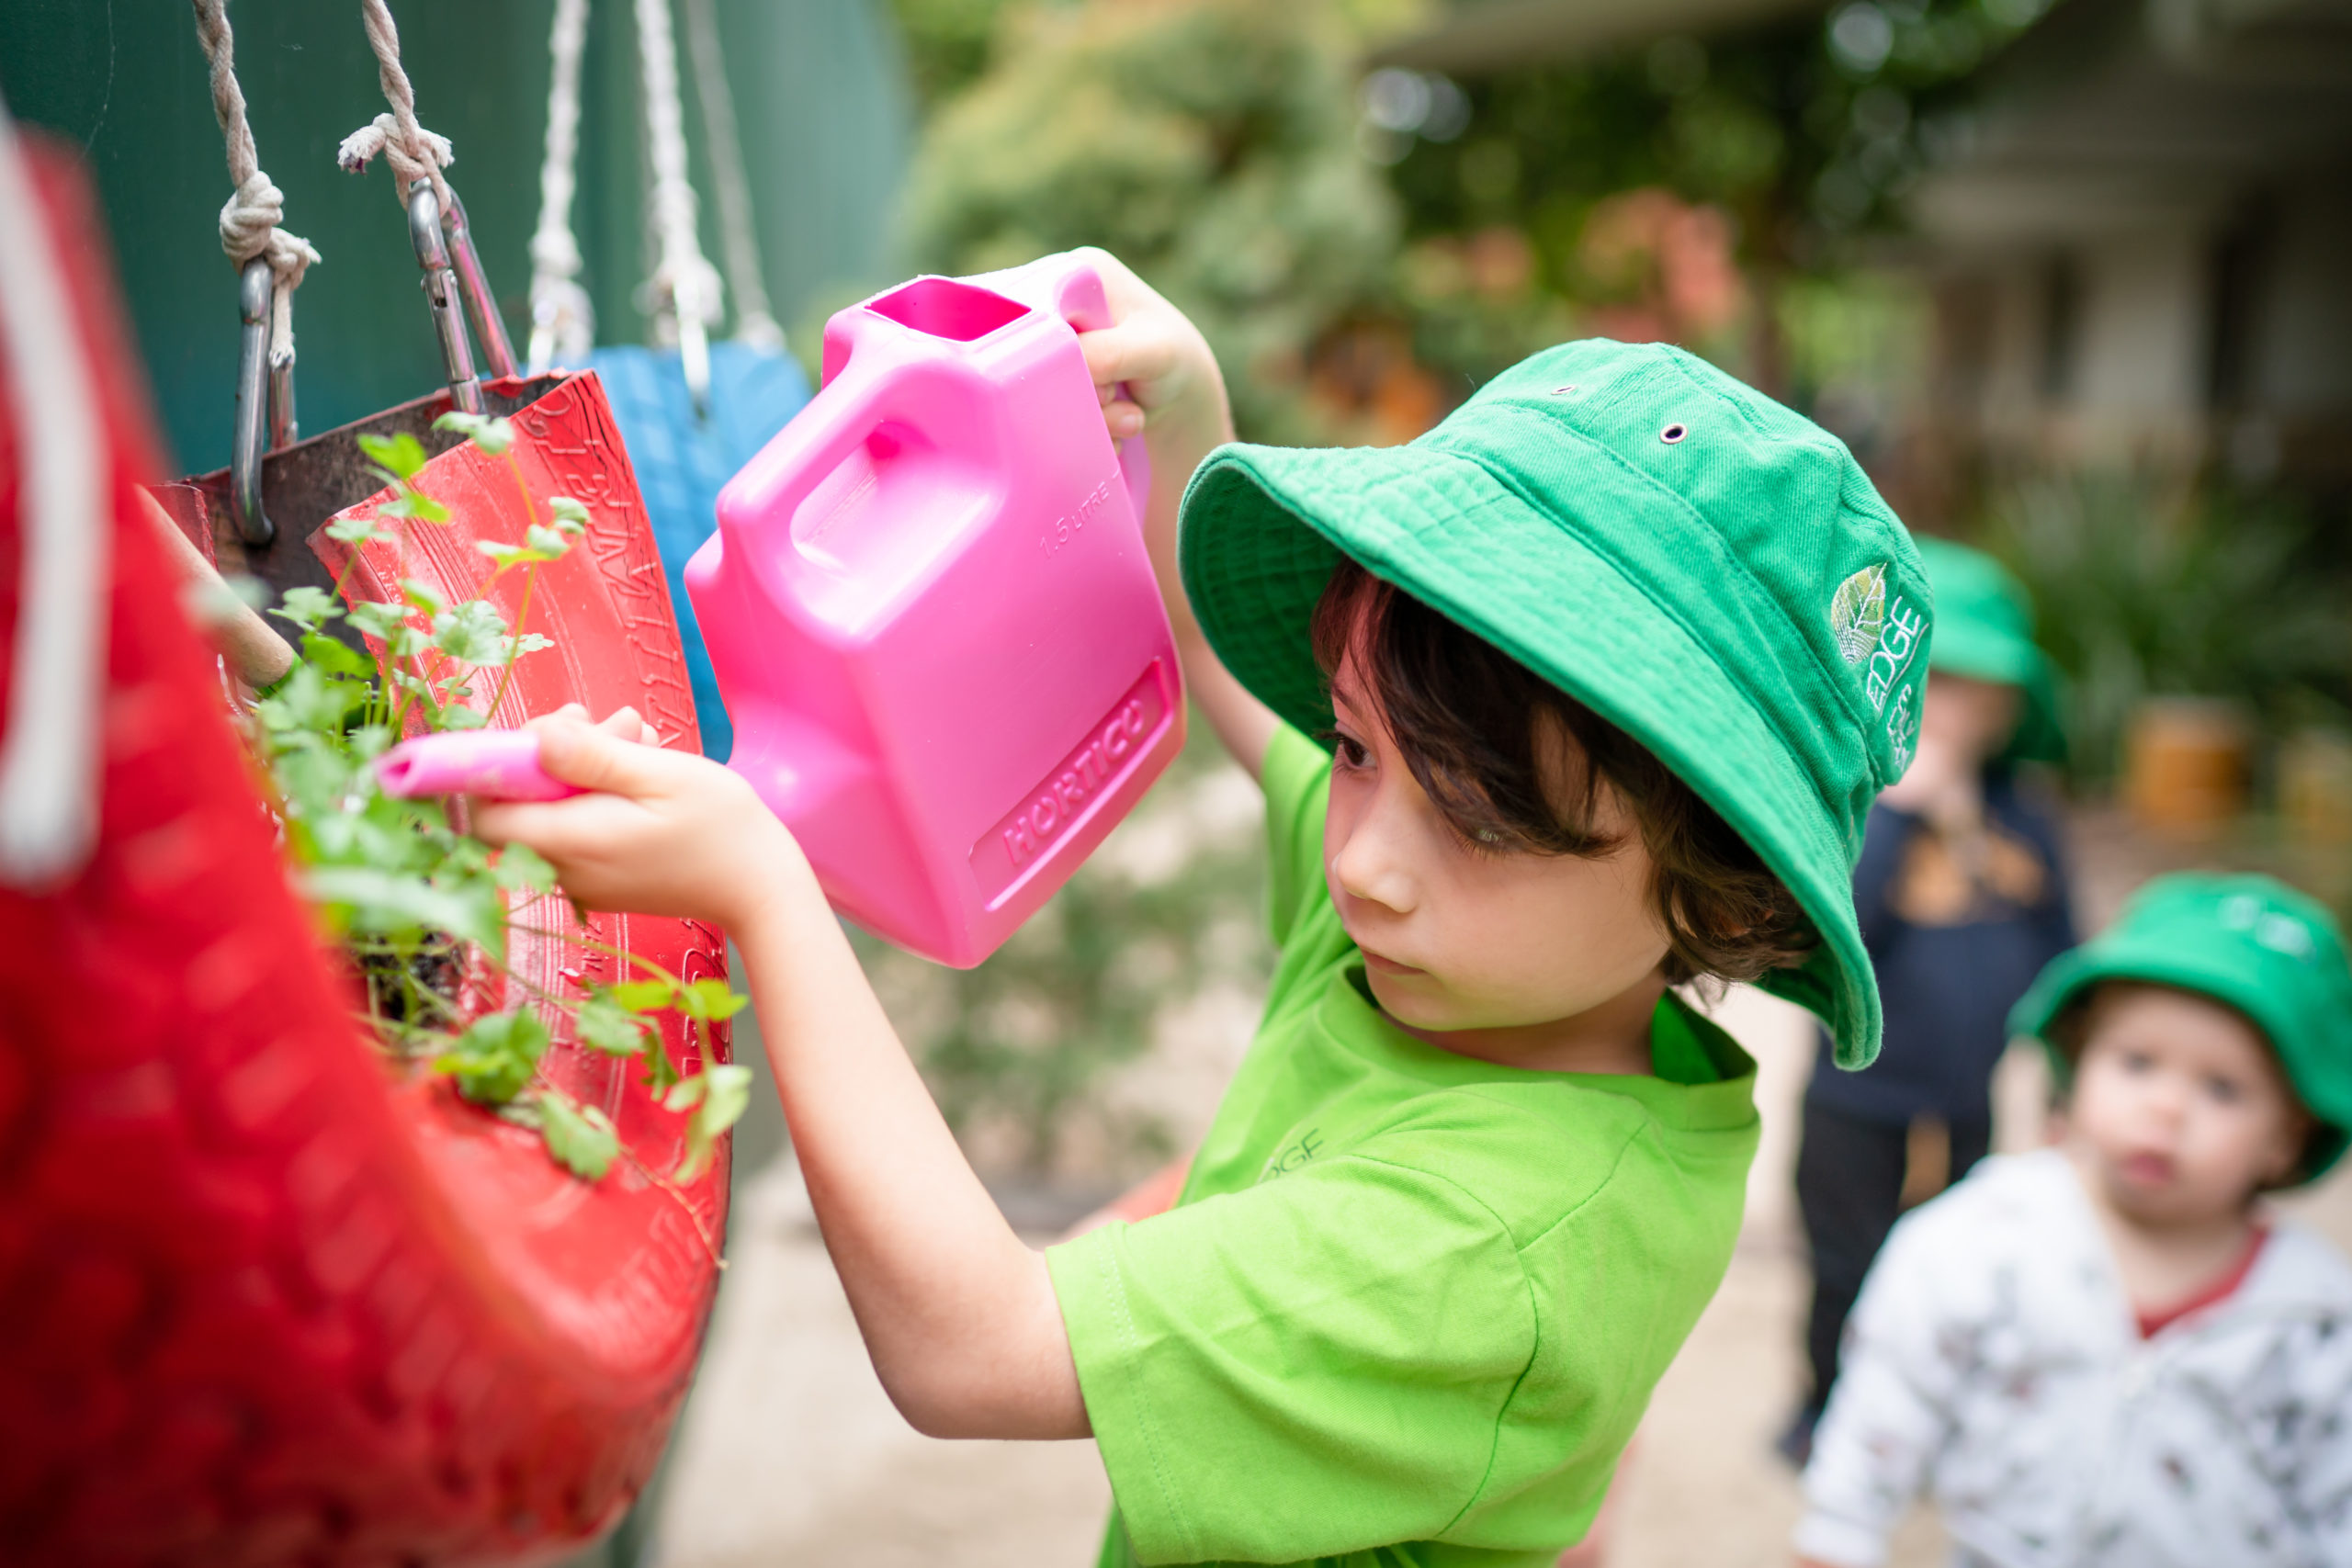 Gardening with kids sustainably